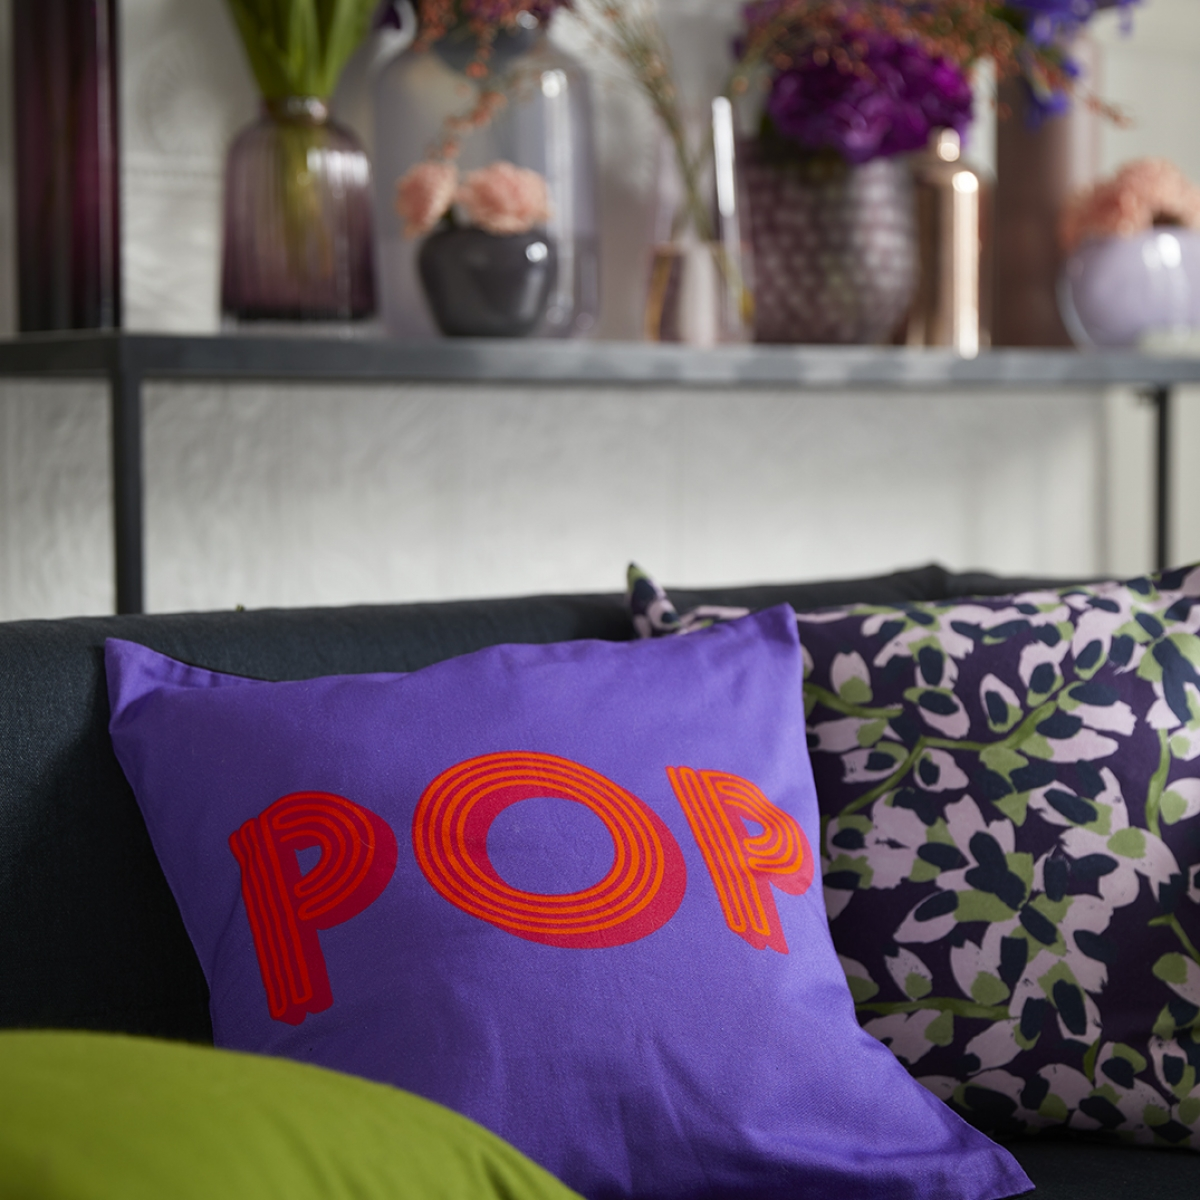 pantone colour of the year for 2018 is utra violet. this pop cushion in bright purple by quirk and rescue is perection